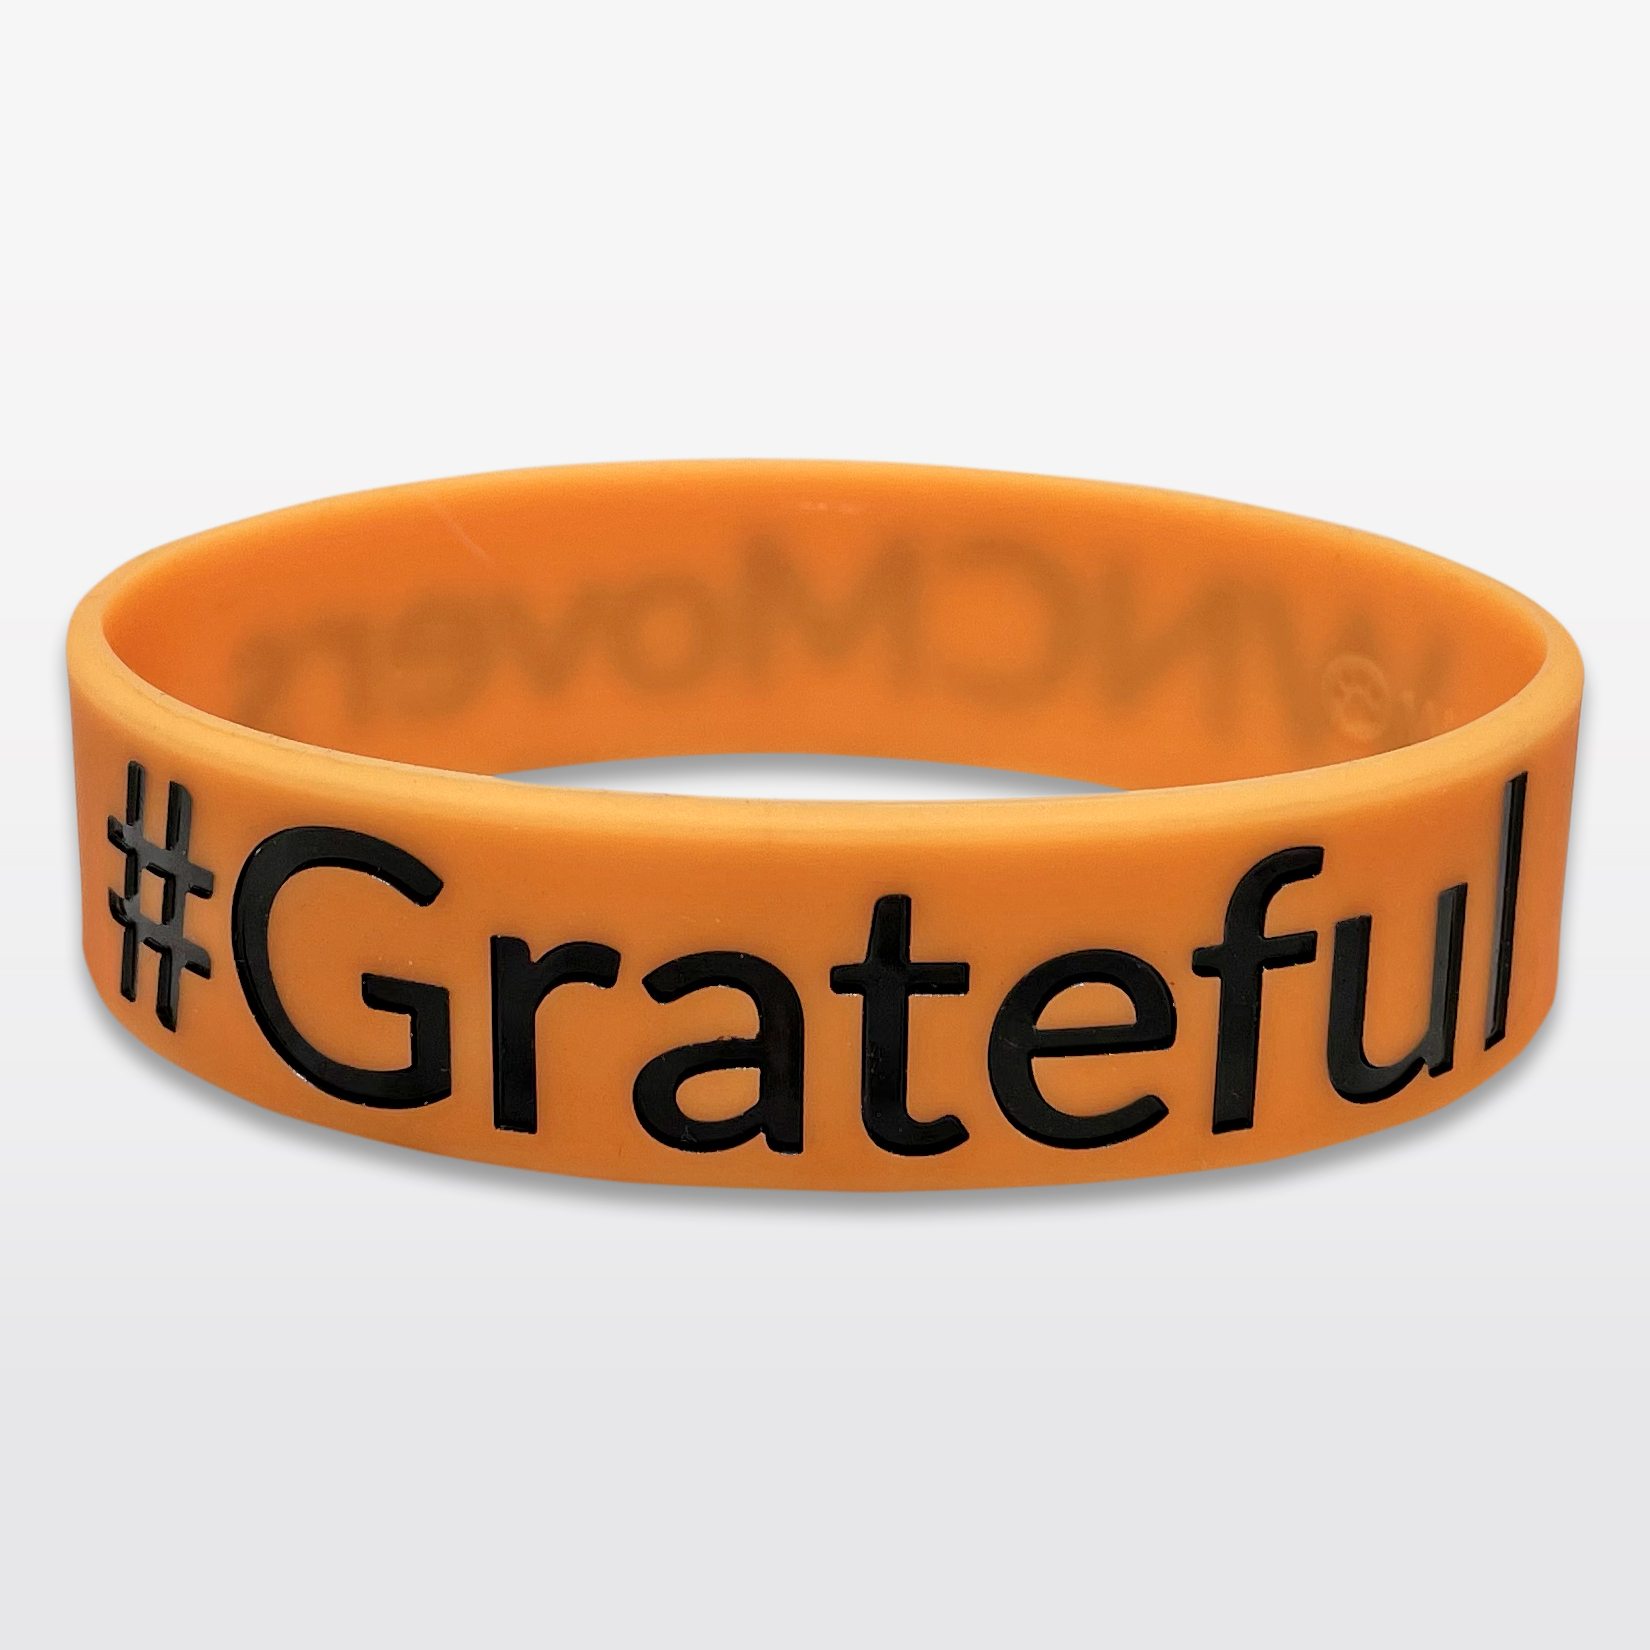 #Grateful Wide Silicone Wristband custom made for a customer